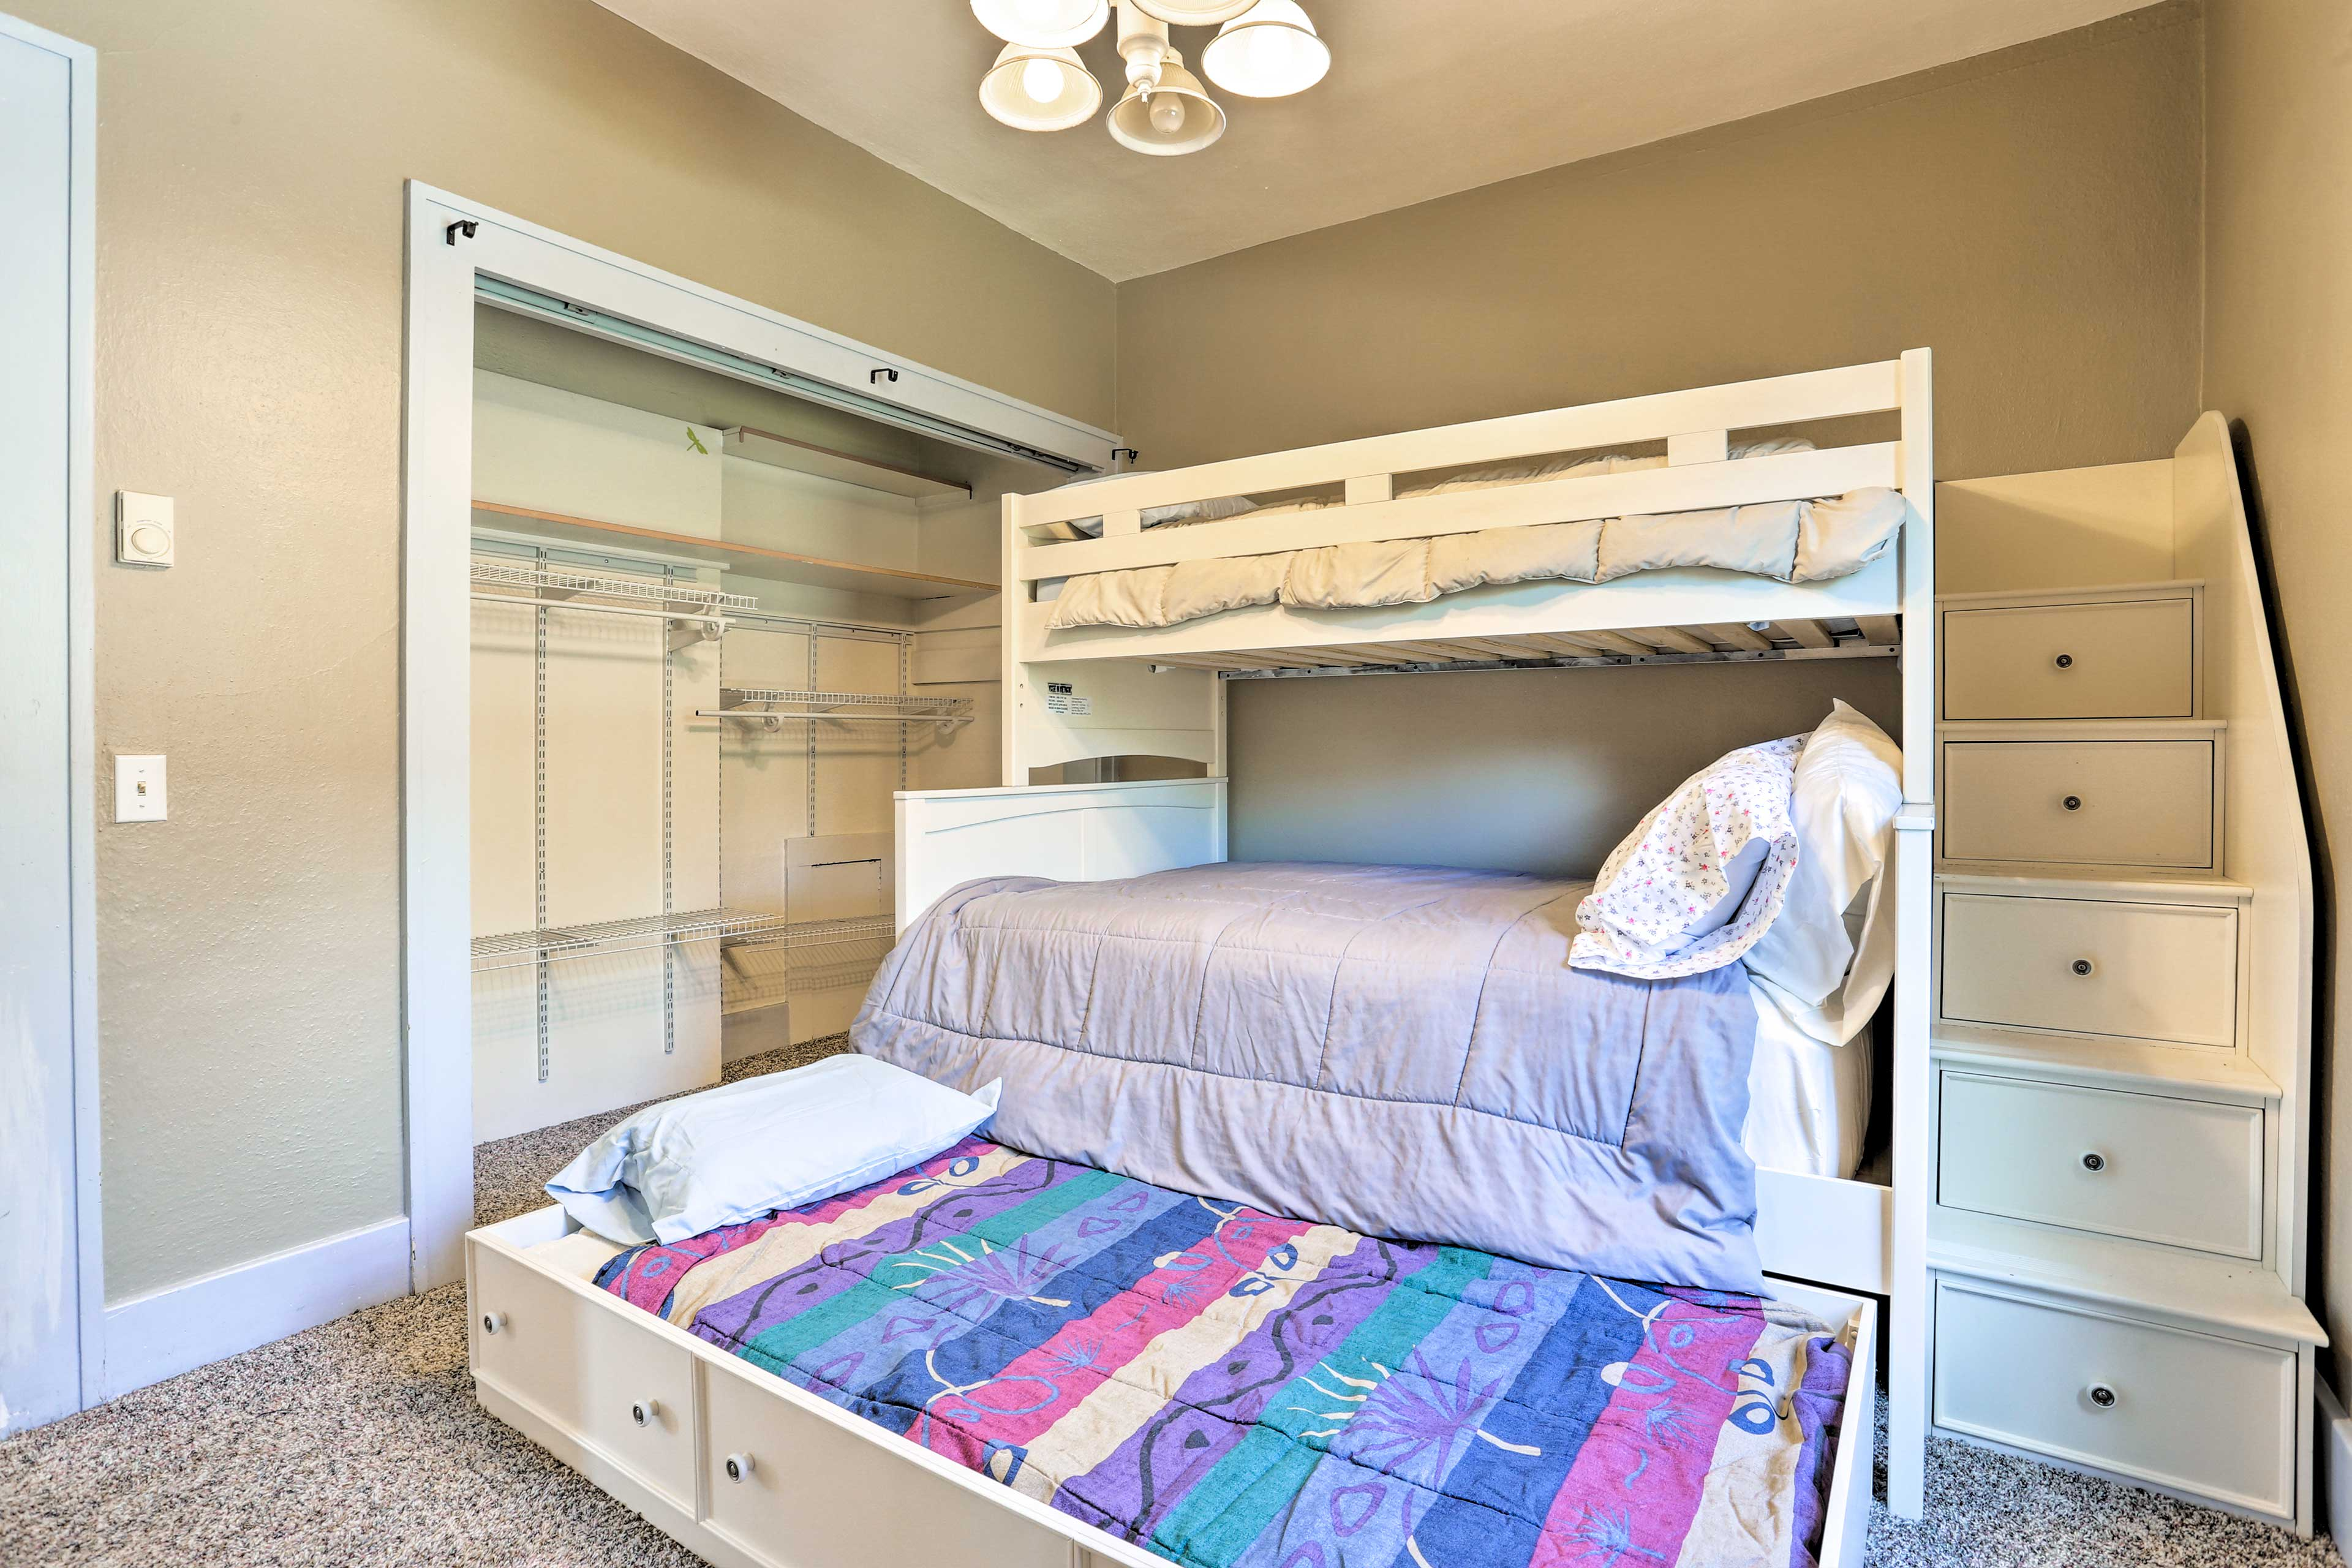 Up to 4 can sleep in this cozy bedroom.